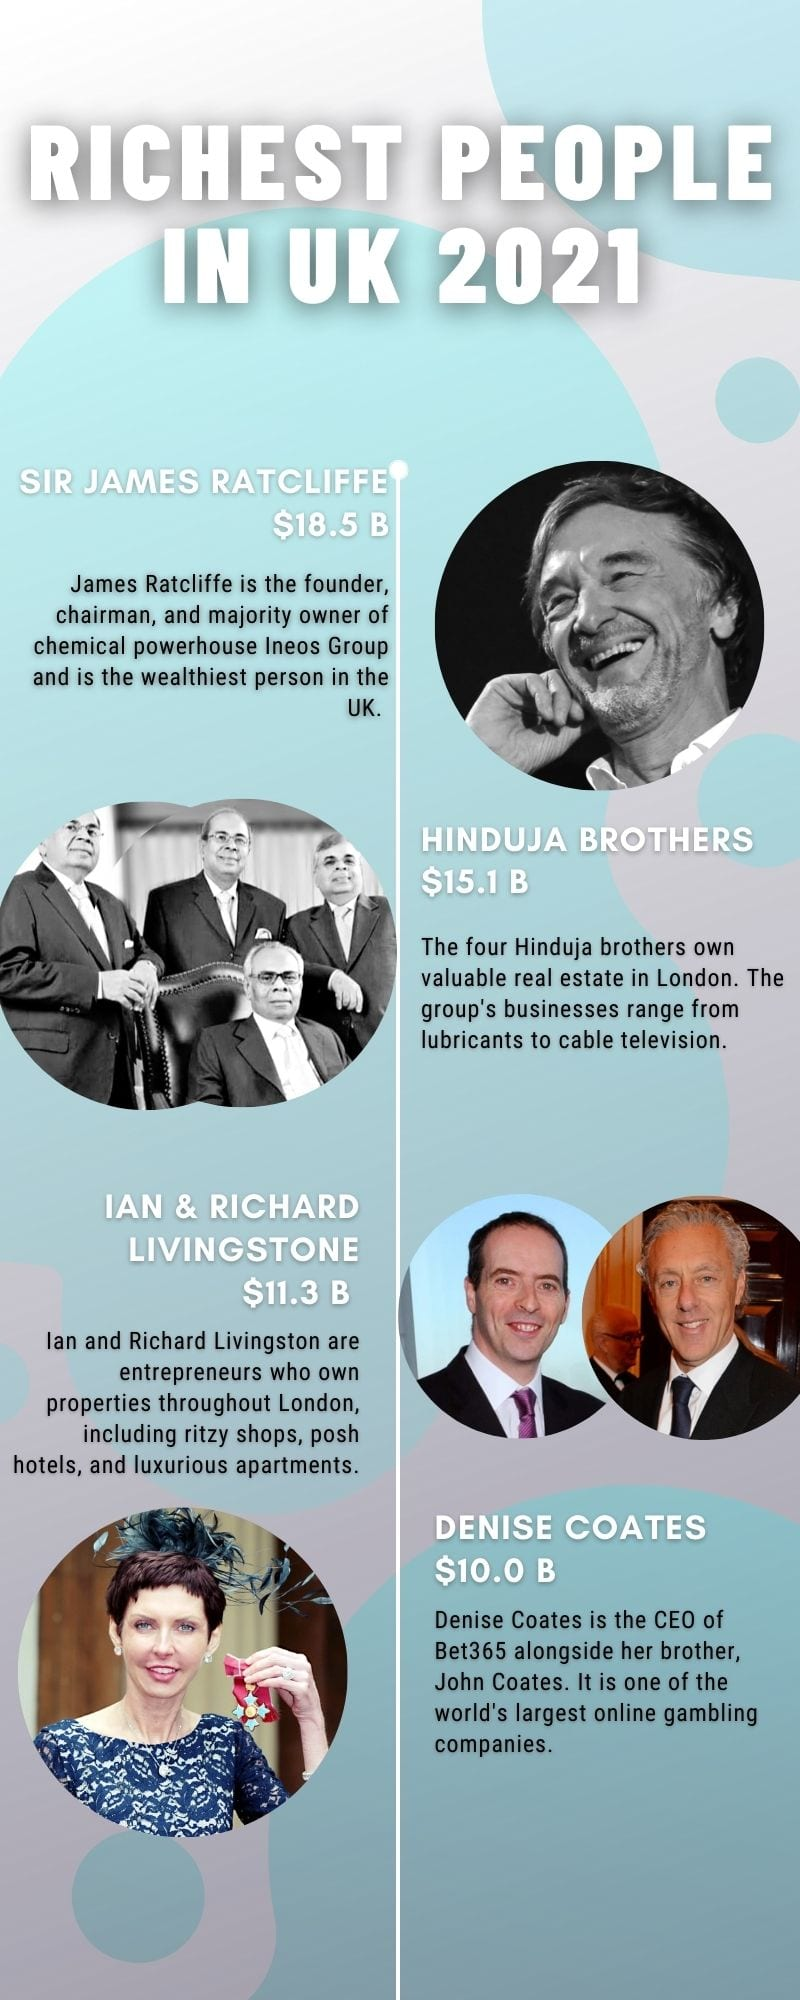 richest people in UK